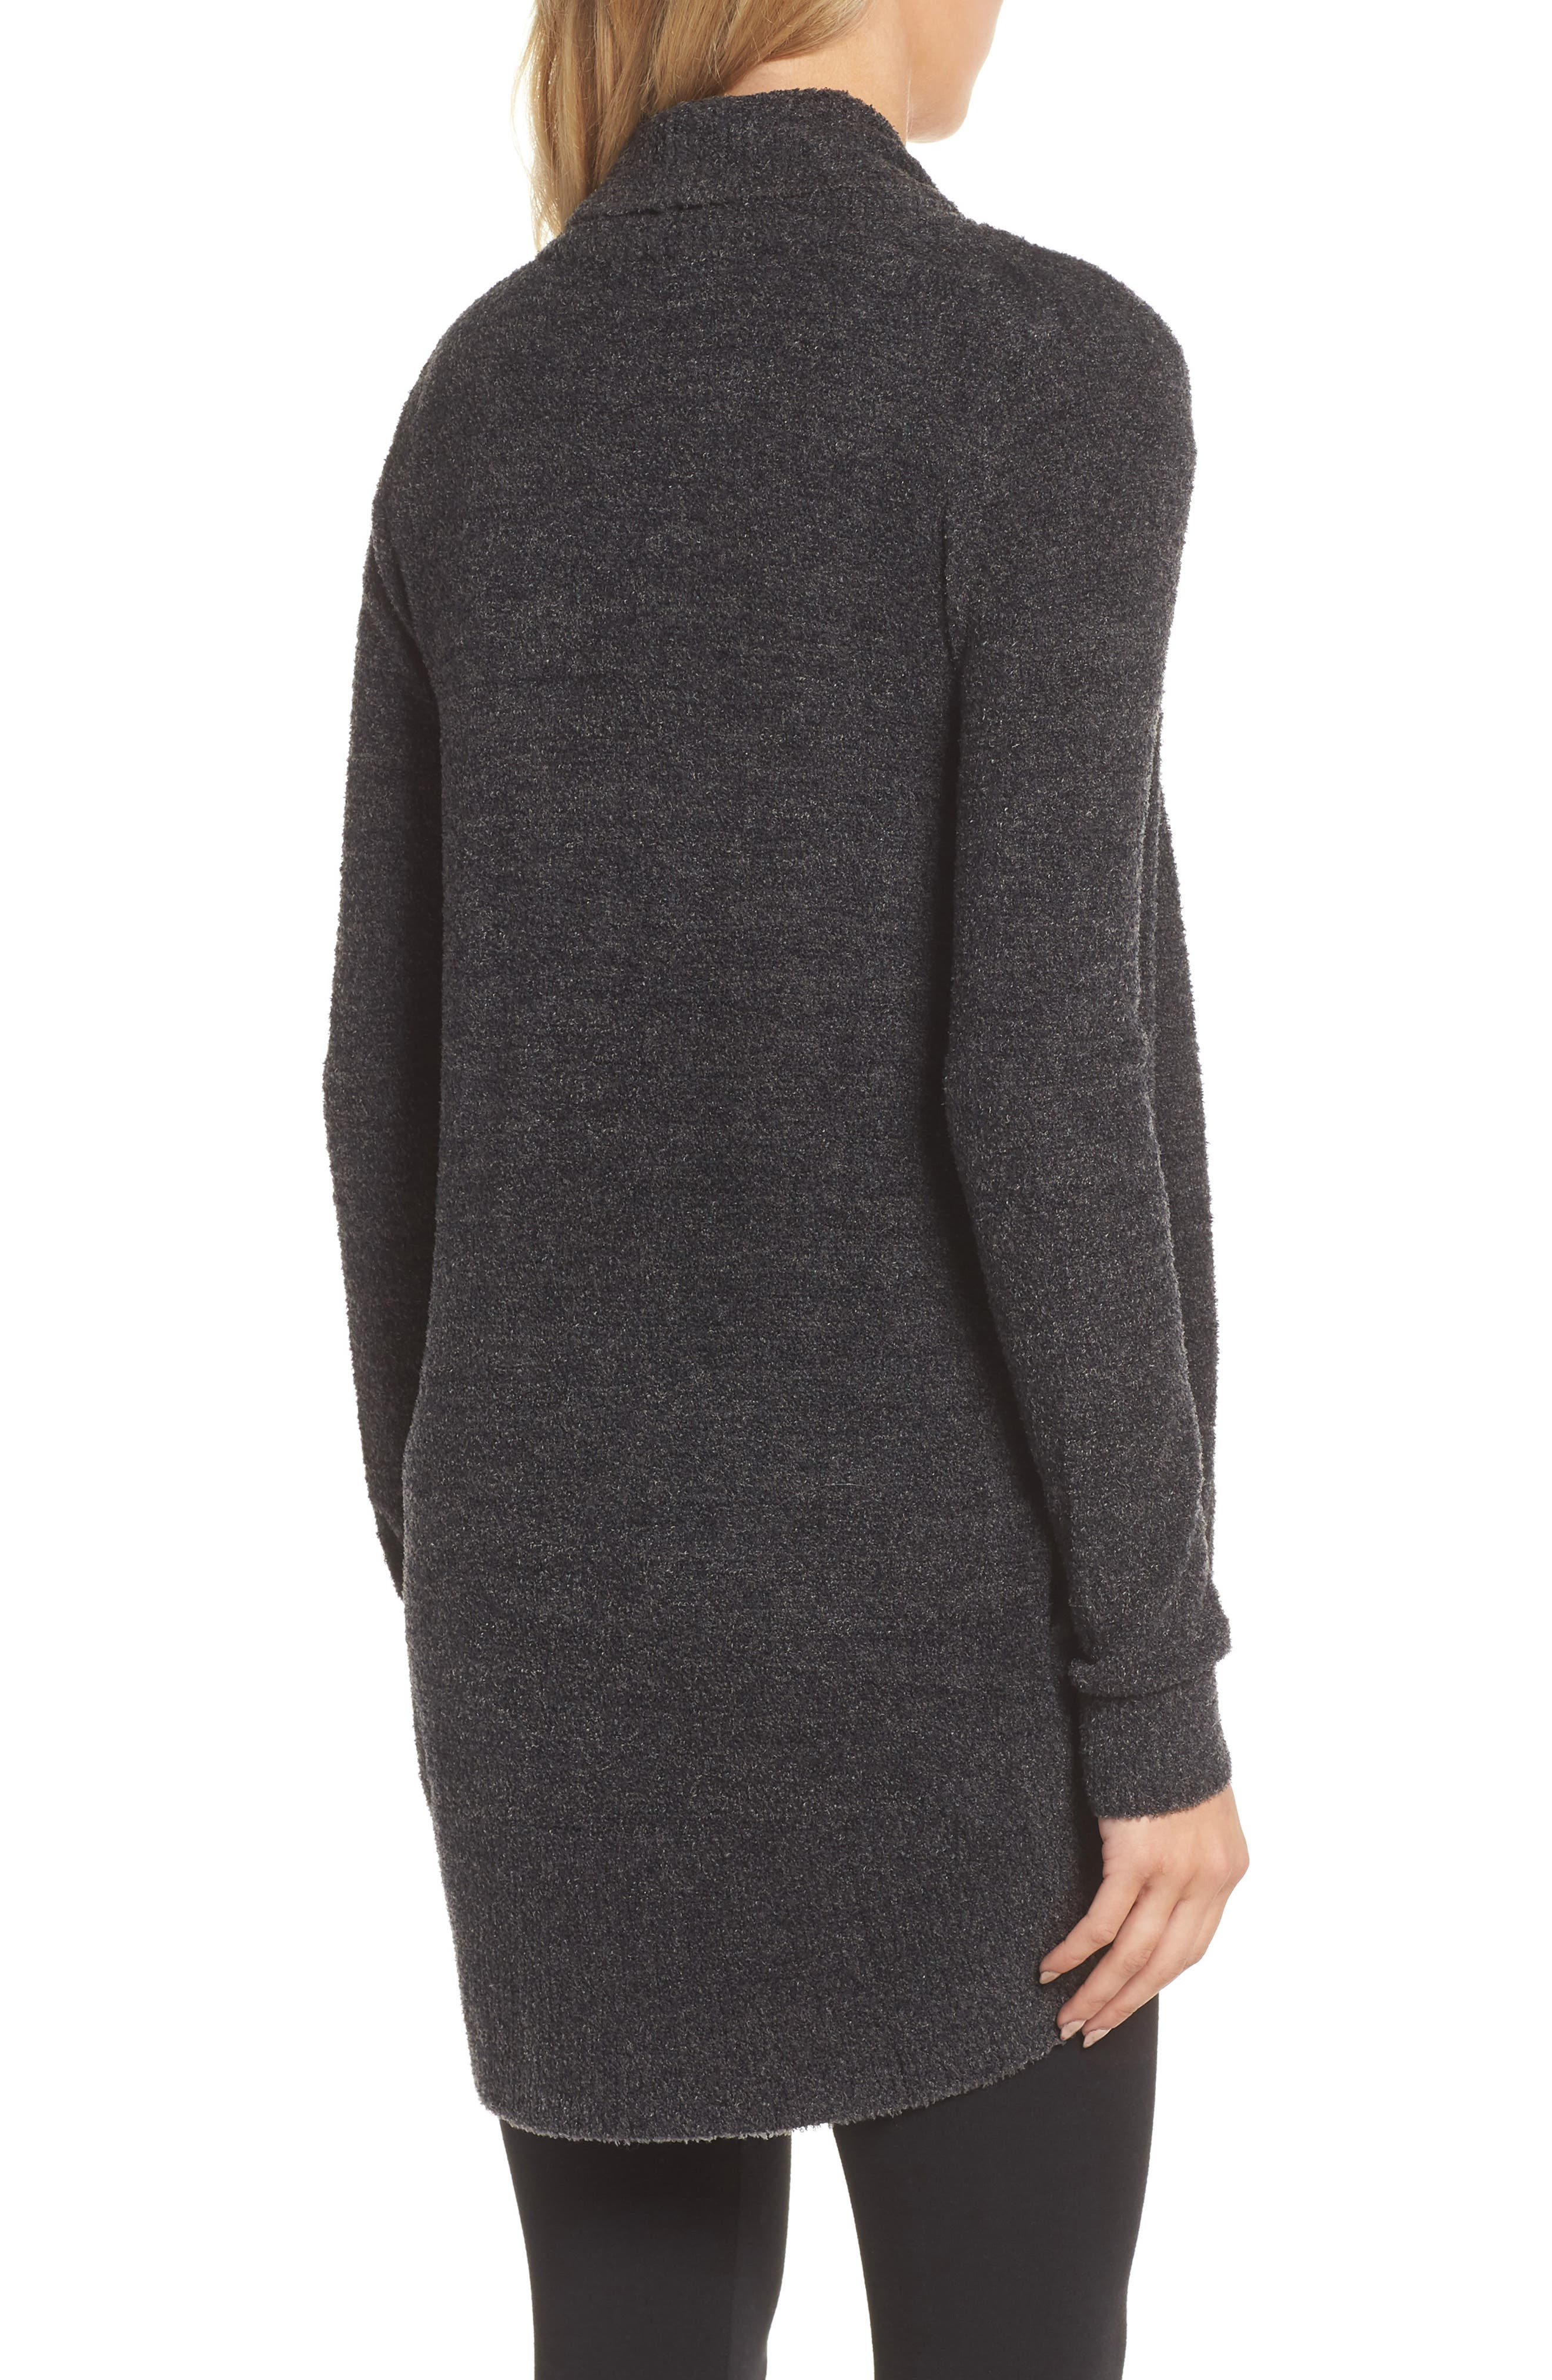 CozyChic Lite<sup>®</sup> Circle Cardigan,                             Alternate thumbnail 2, color,                             Carbon/ Black Heather